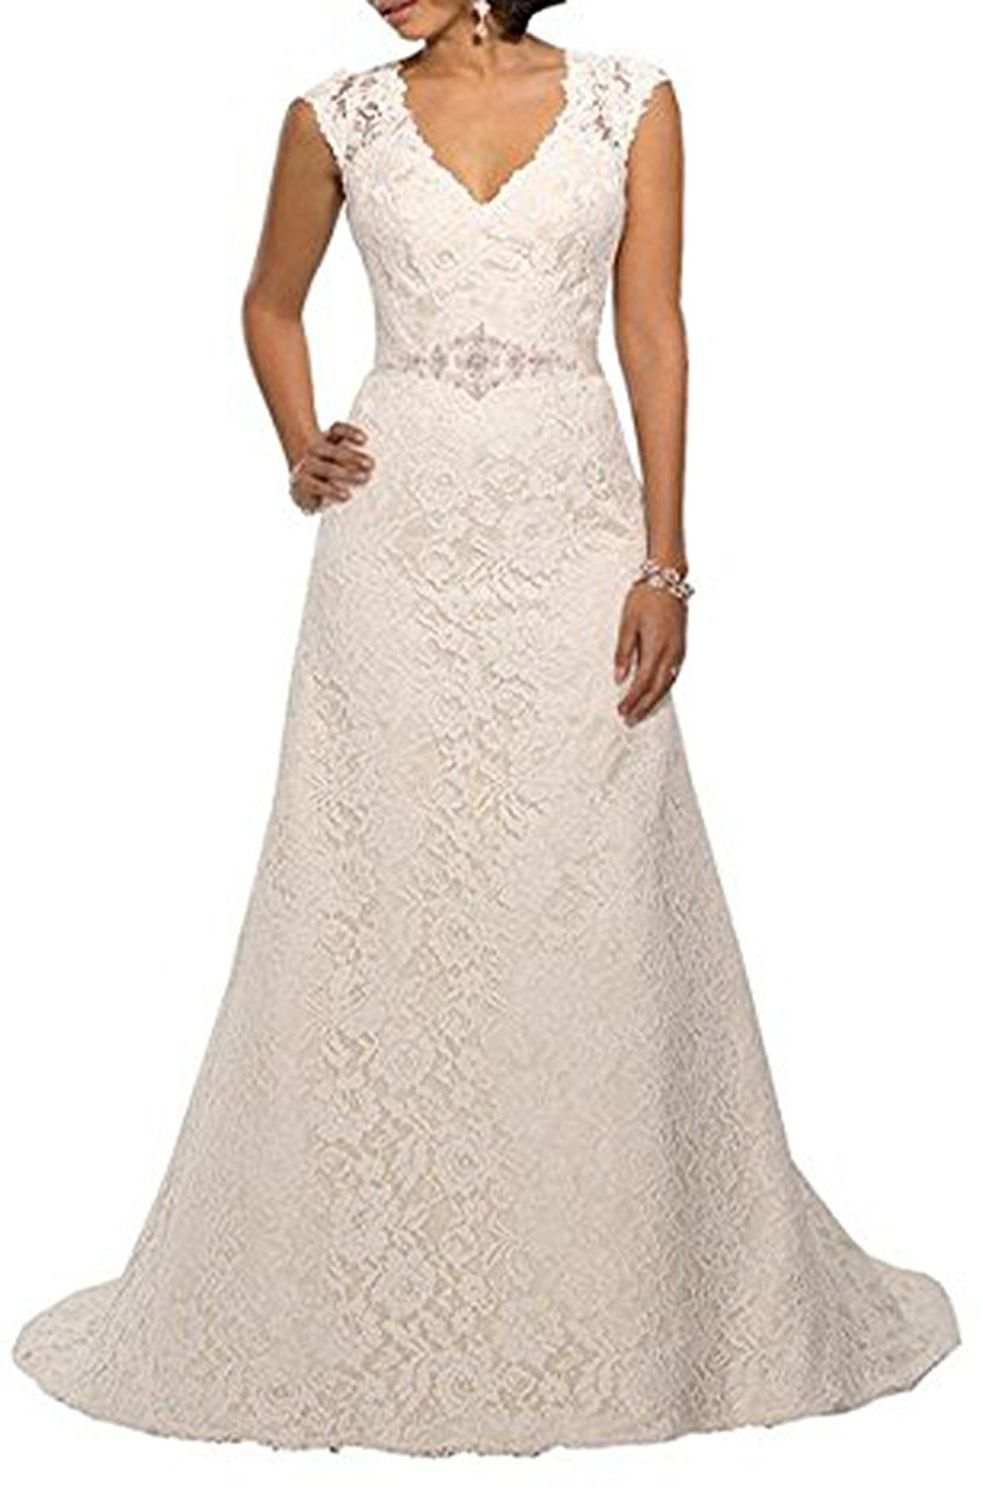 Yipeisha v neckline a line cap sleeve lace over satin wedding dress